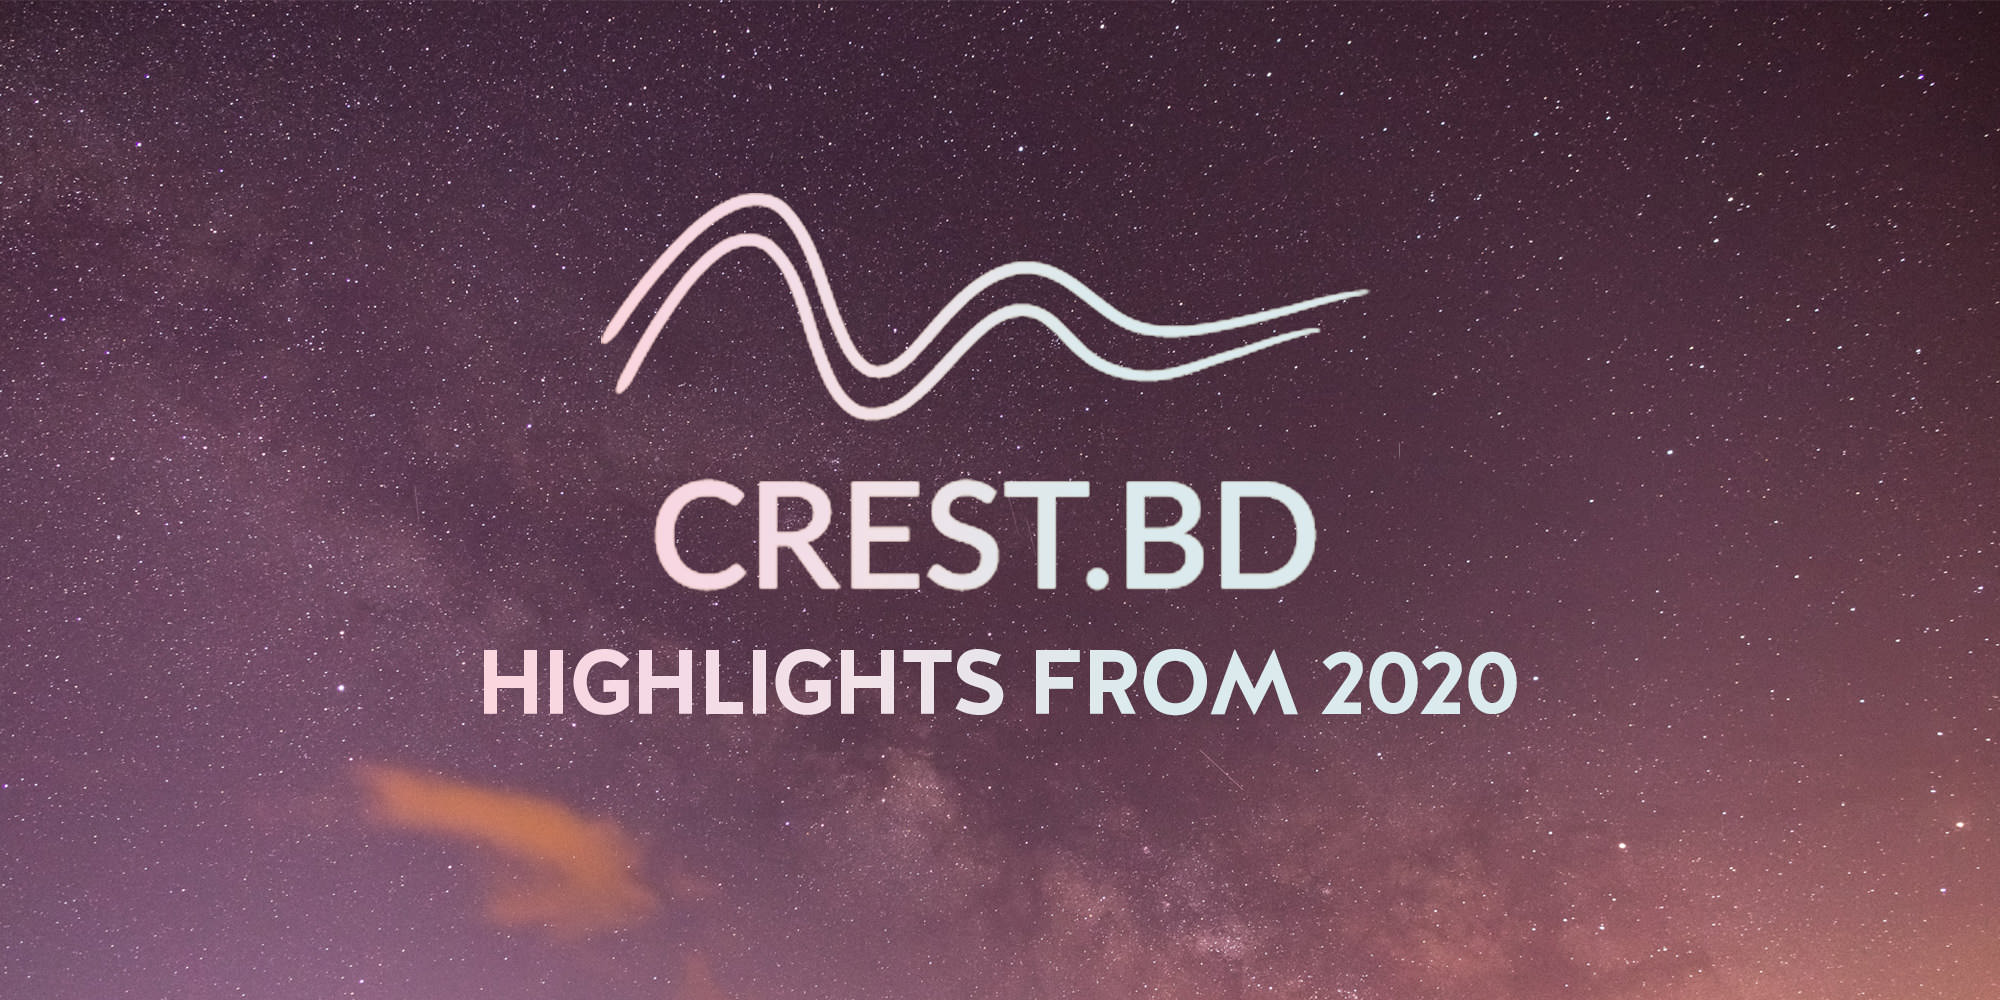 Happy New Year from CREST.BD! Here's a look back at 2020.